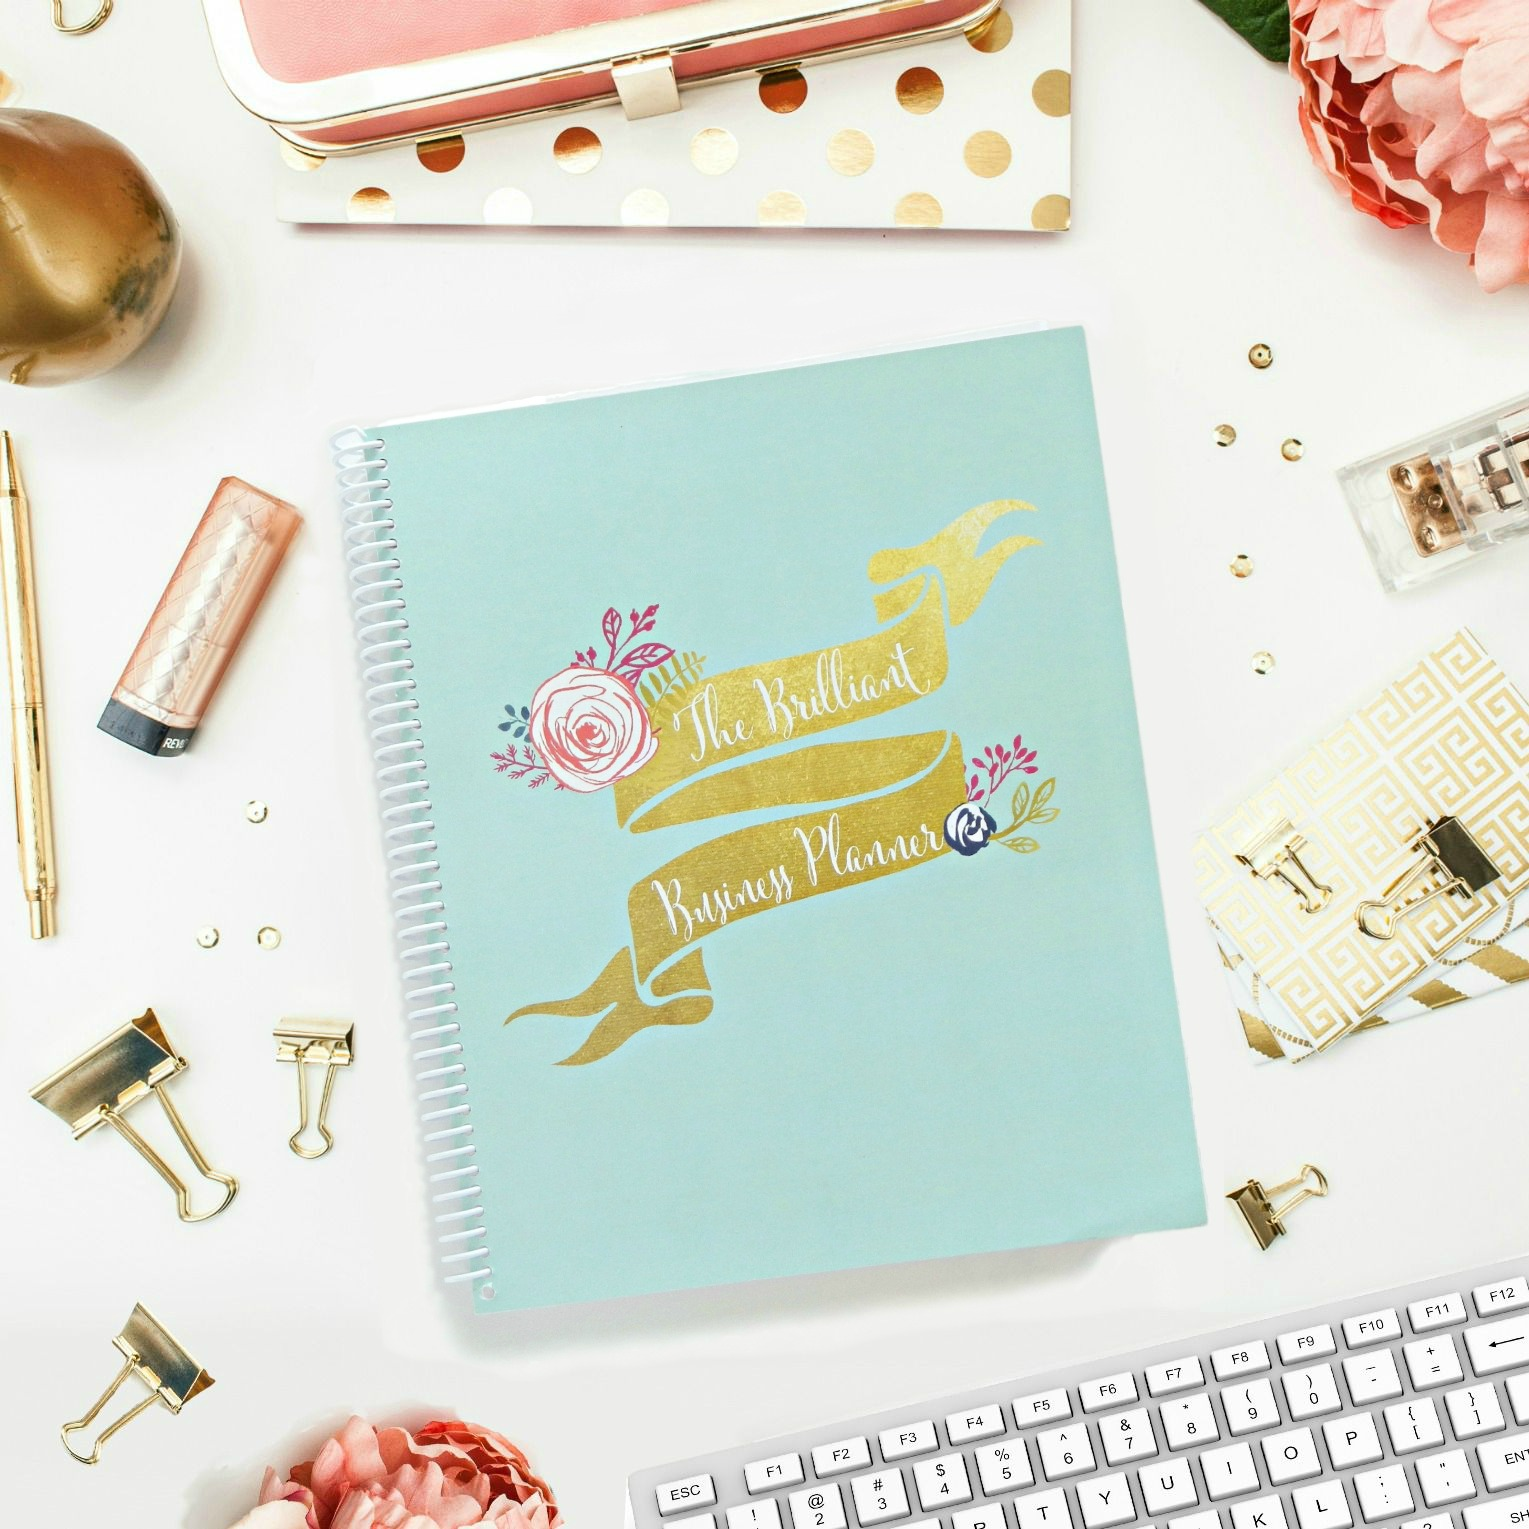 The Brilliant Business Planner - perfect for bloggers, etsy sellers, and brilliant mamapreneurs. A planner for work-at-home moms and girl bosses.